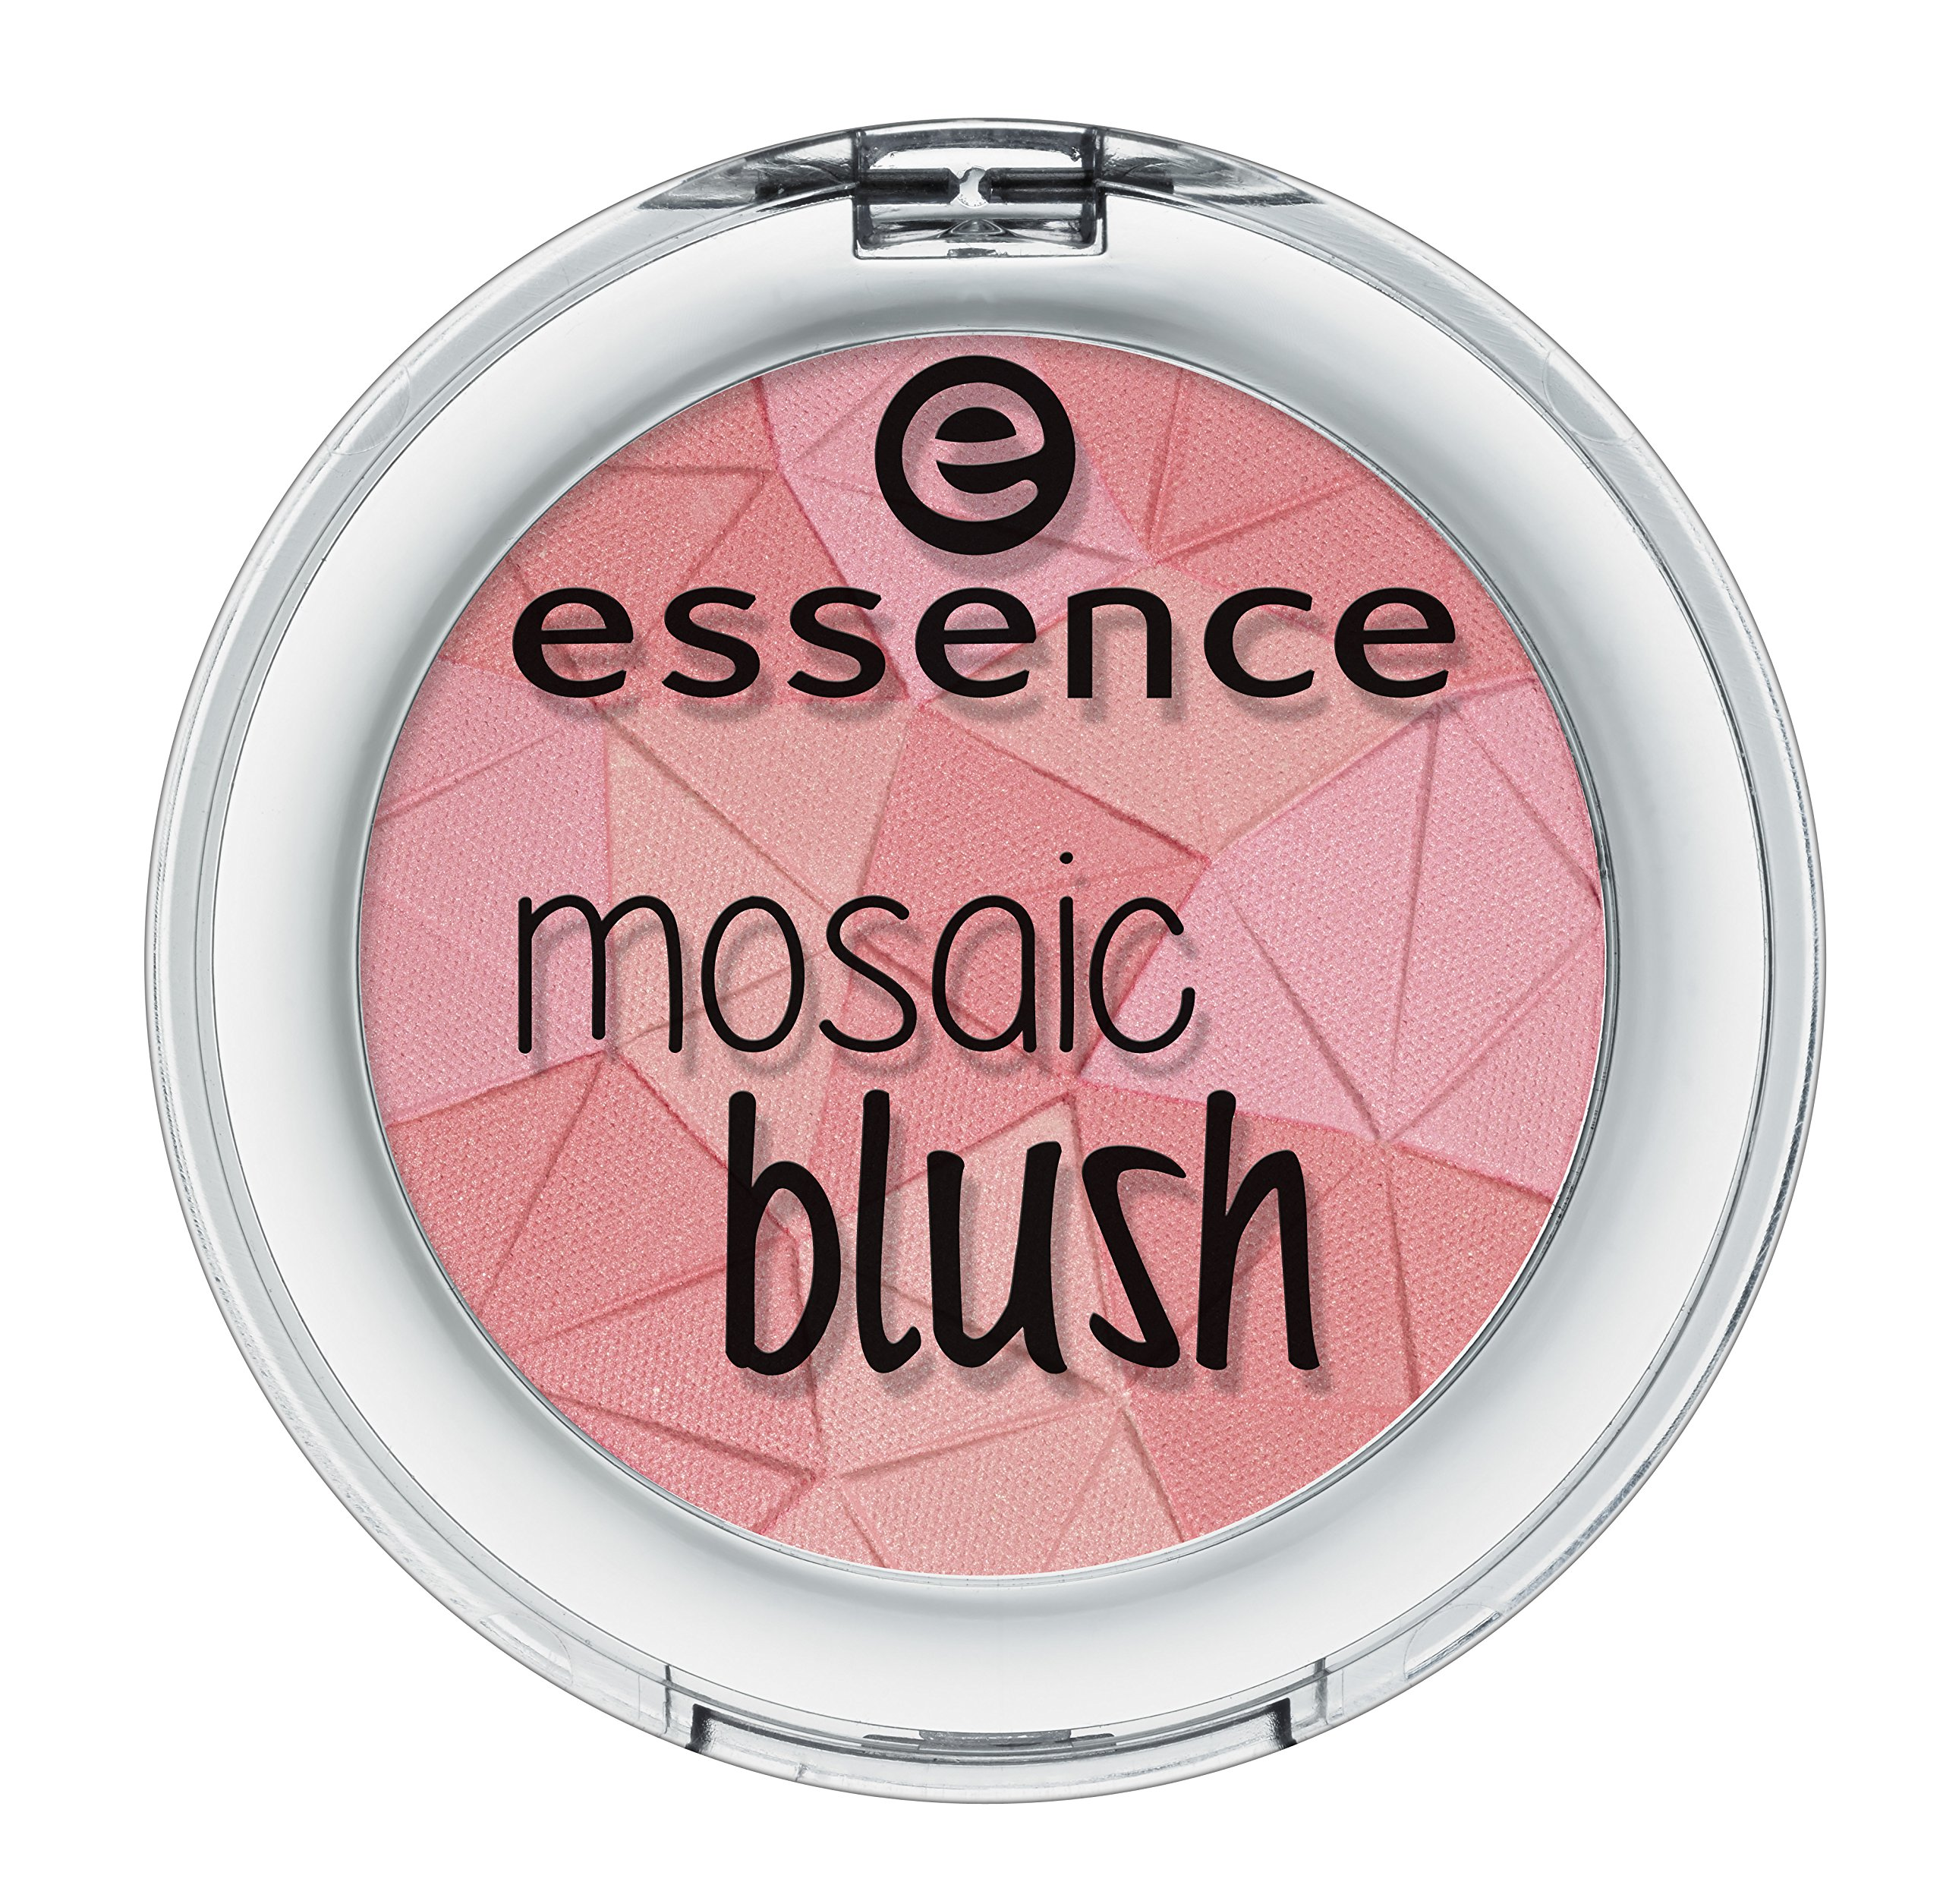 essence Mosaic Blush, 20 All You Need Is Pink